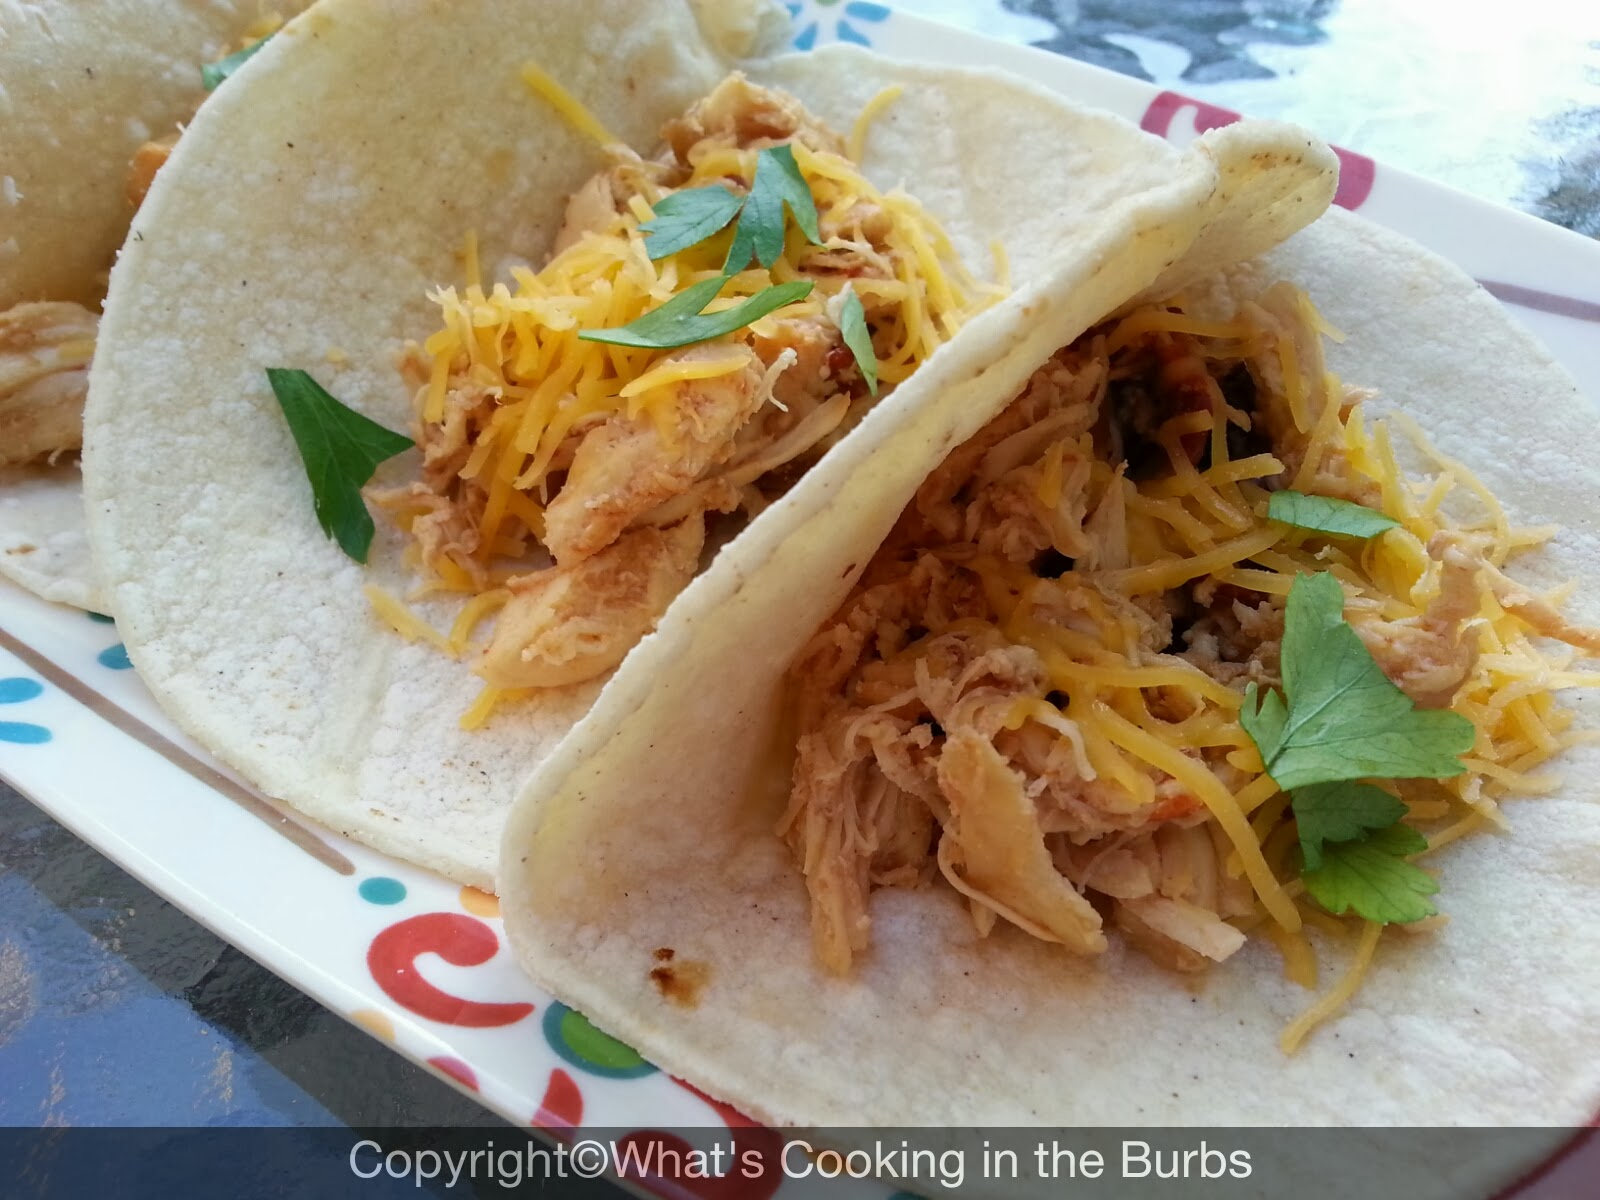 What's cooking in the burbs: Honey Chipotle Chicken Crock Pot Tacos